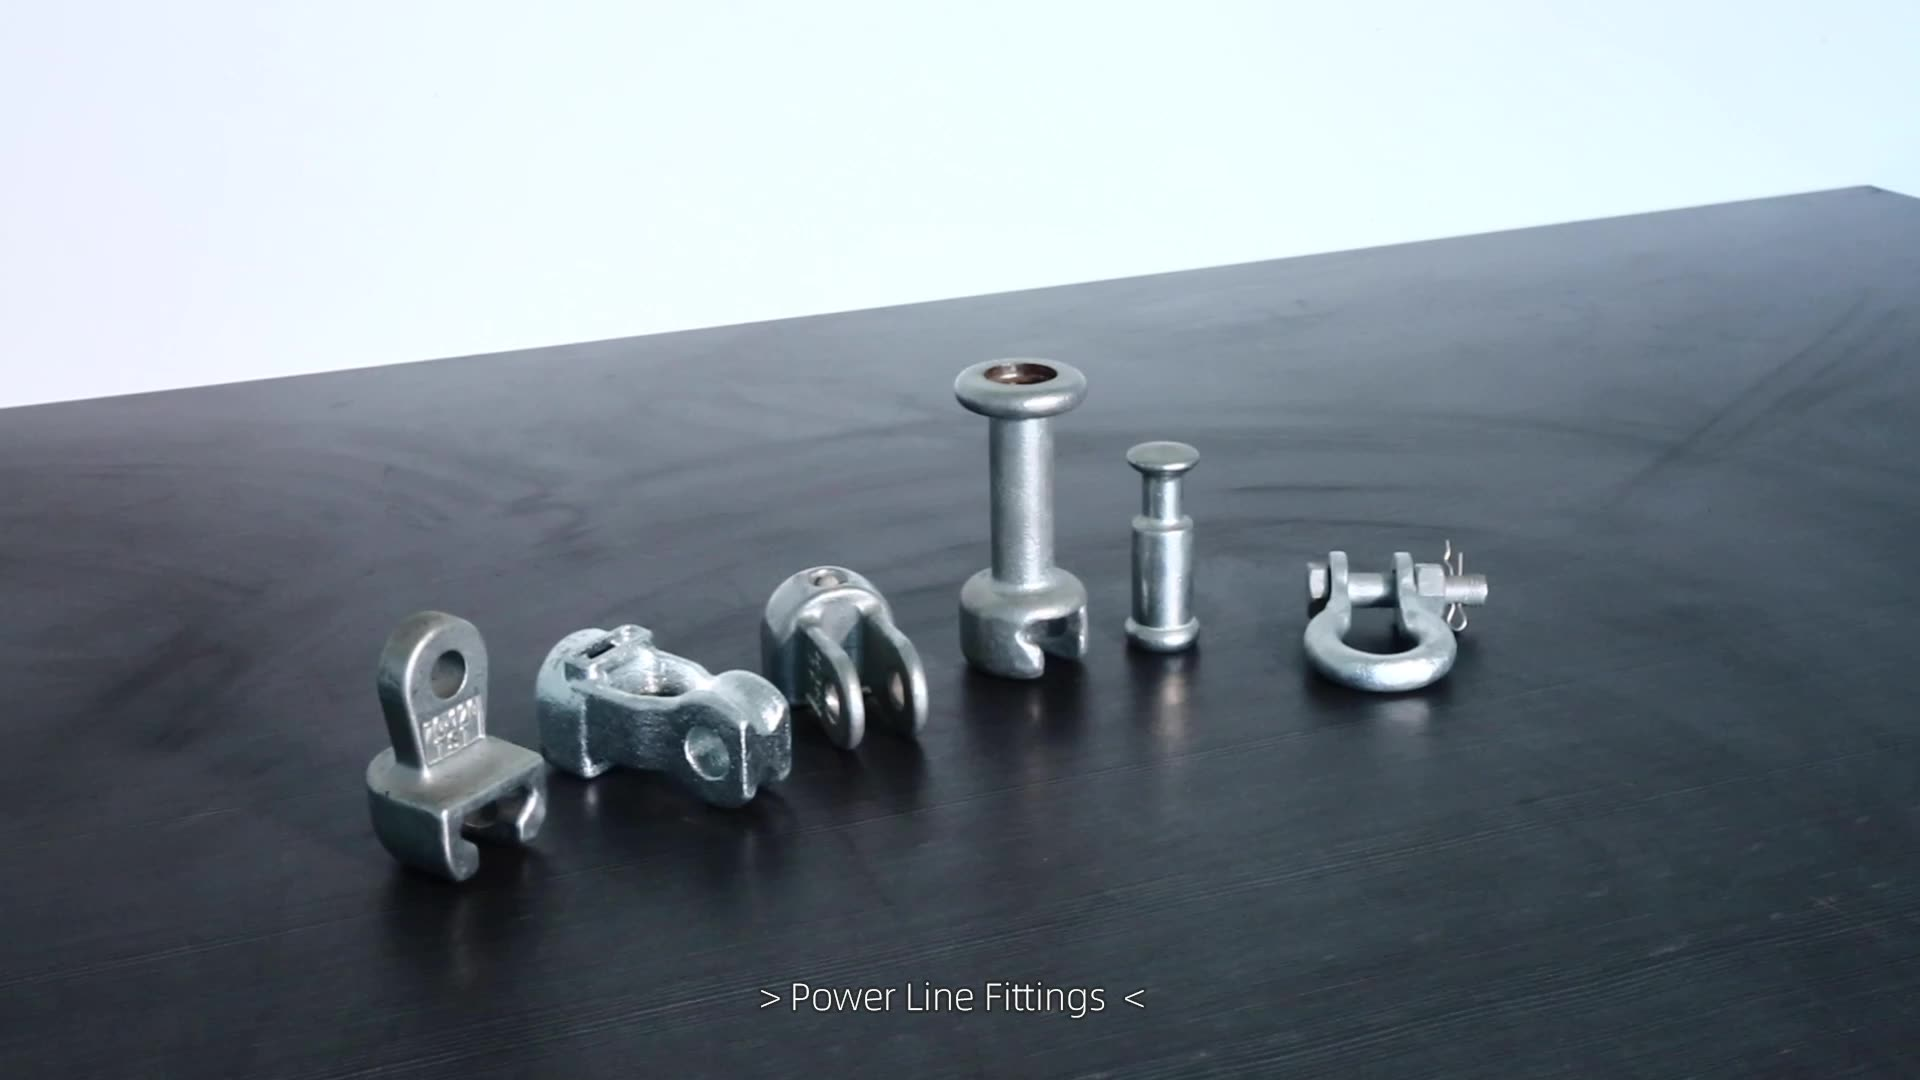 Composite Silicon rubber insulator tongue end clevis fitting